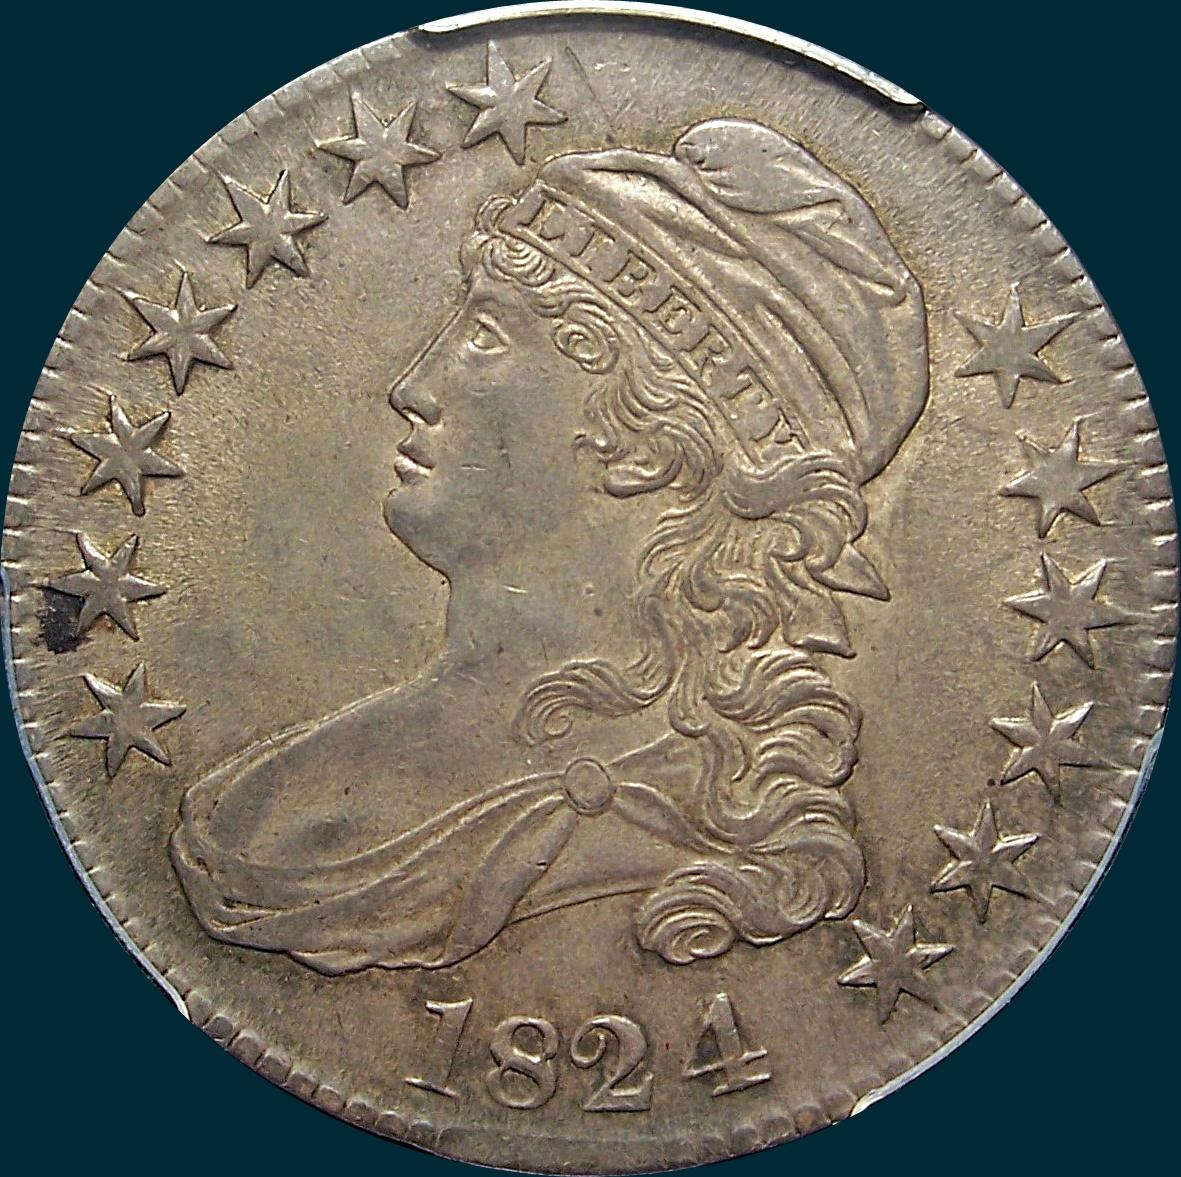 1824 over 4, O-110, capped bust half dollar